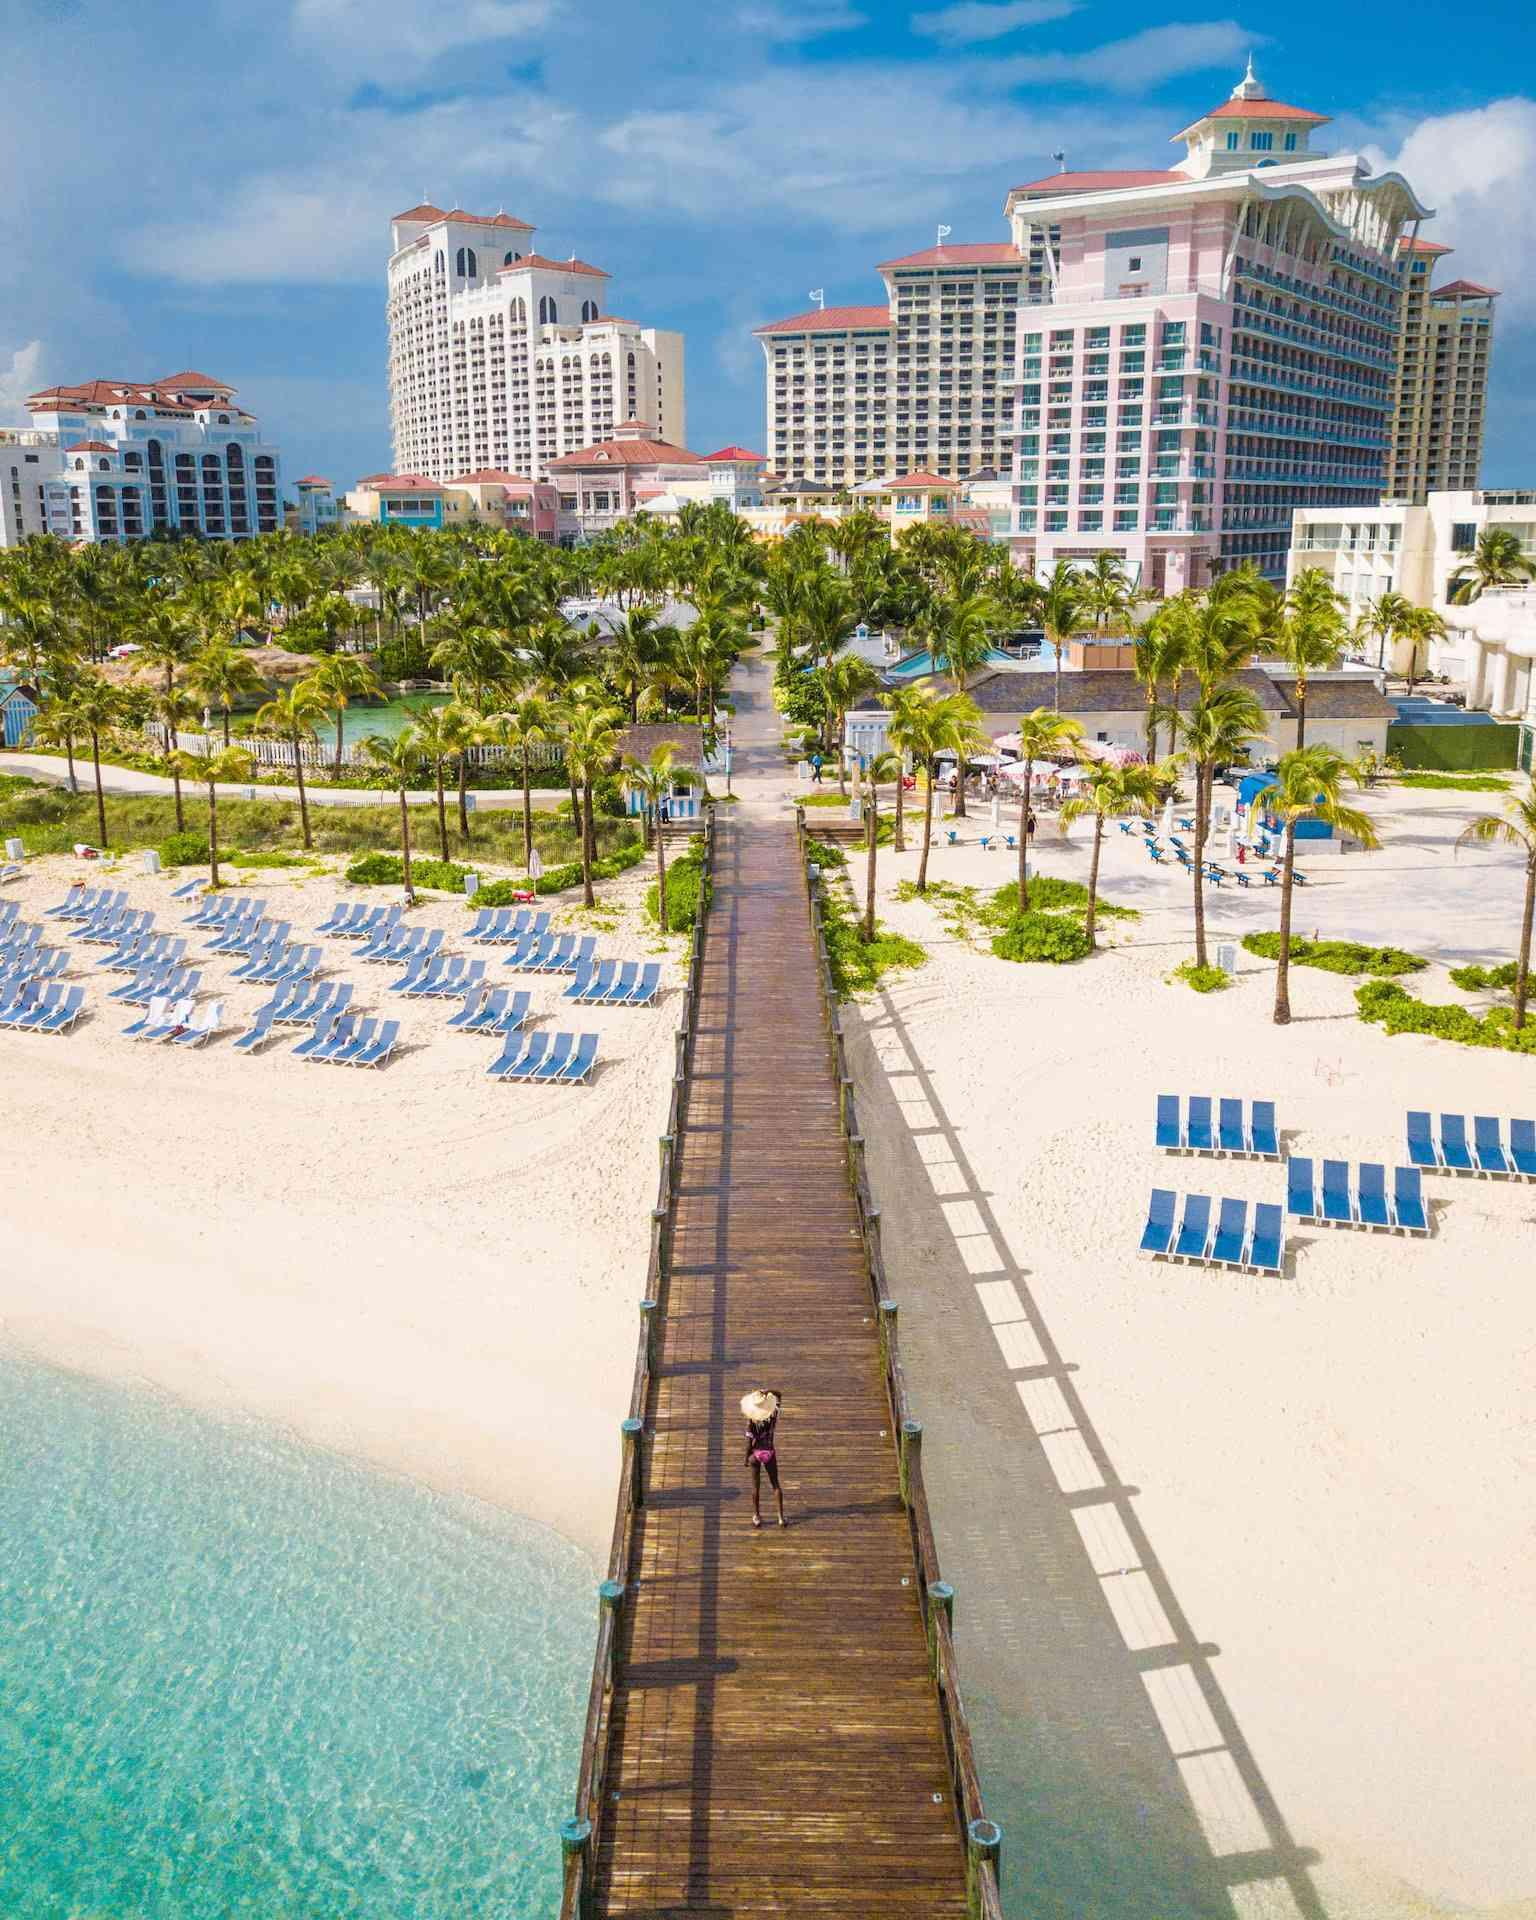 Pier leading to baha mar